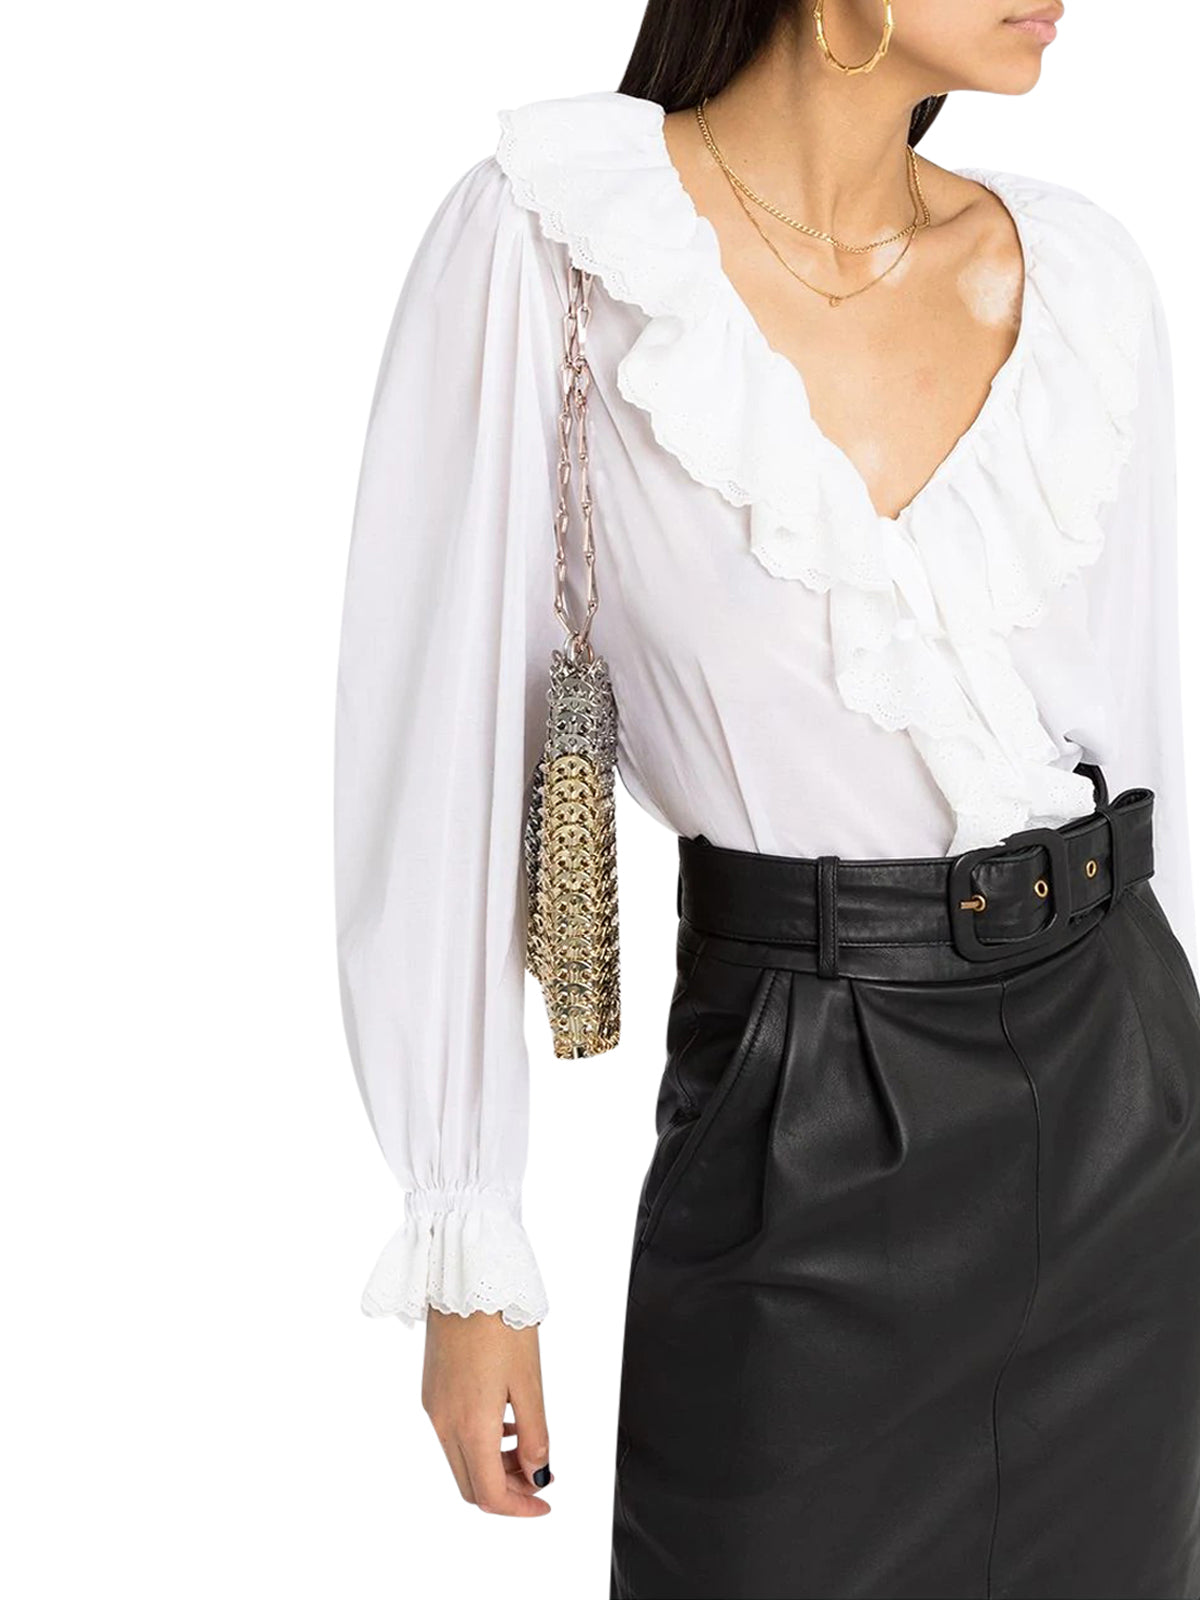 BRODERIE ANGLAISE FRILLED TIE BLOUSE IN COTTON VOILE